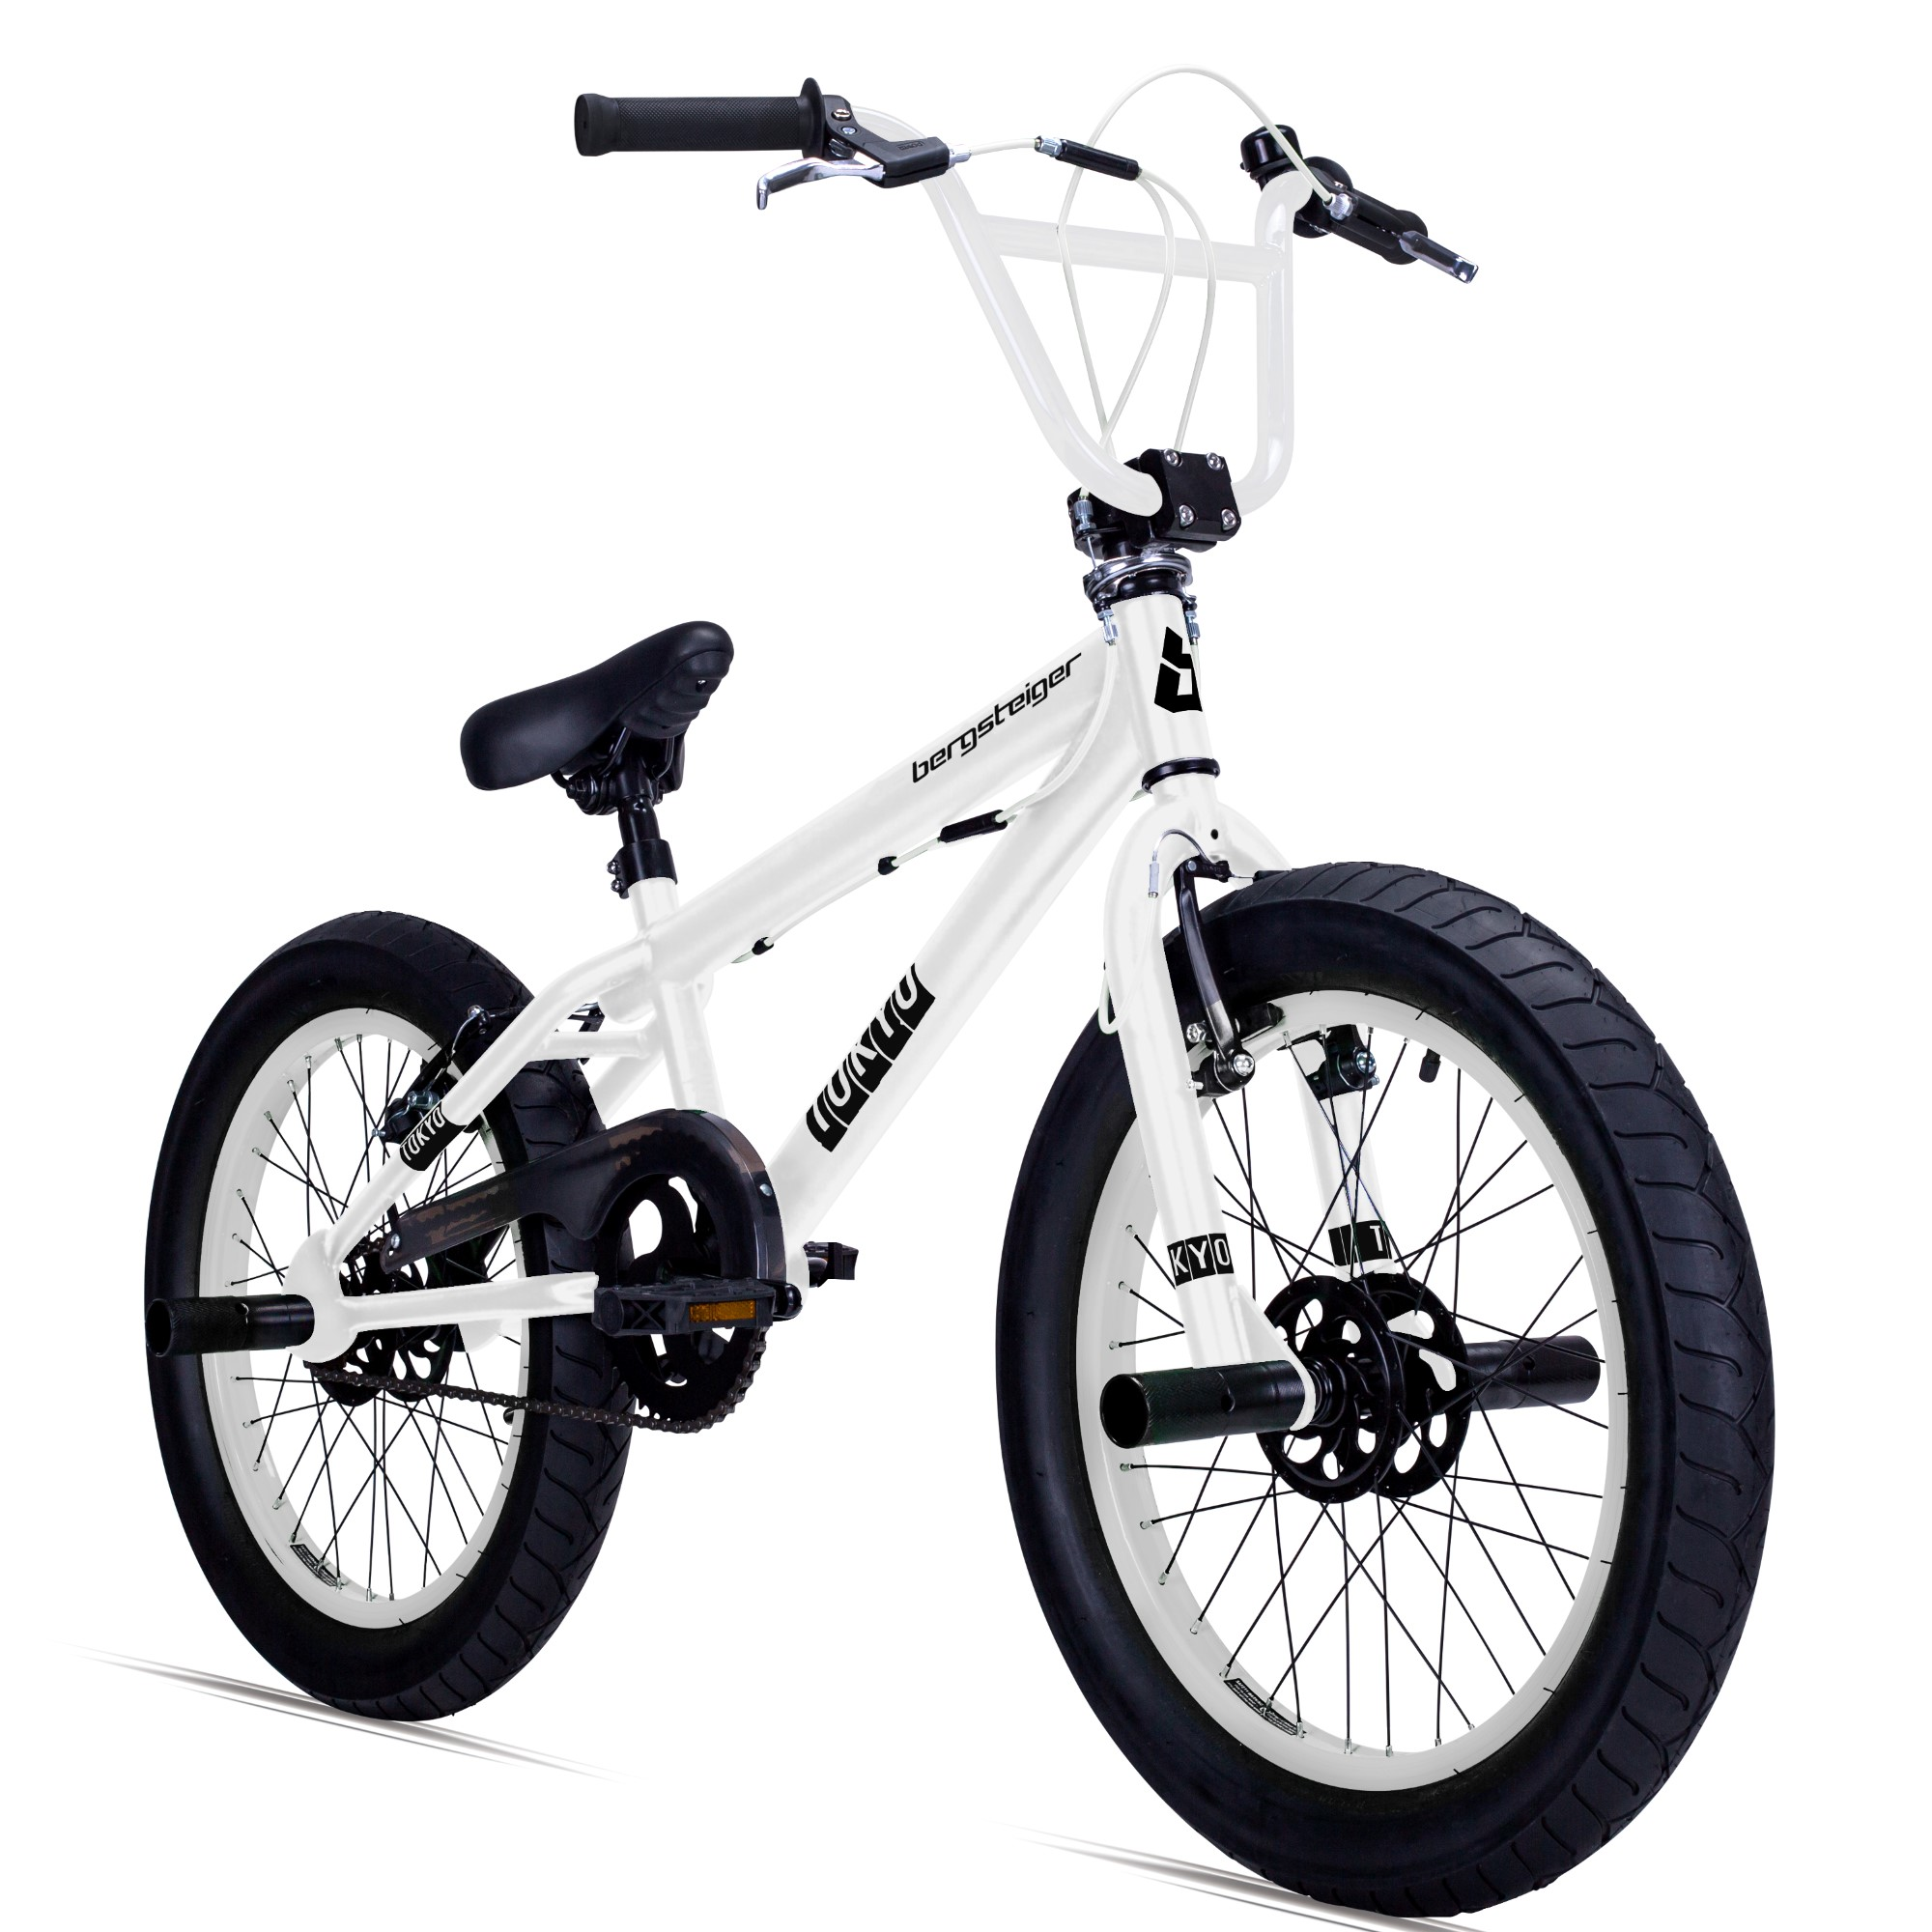 20 bmx tokyo bergsteiger fahrr der mountainbikes citybikes kinderfahrr der bmx u v m. Black Bedroom Furniture Sets. Home Design Ideas